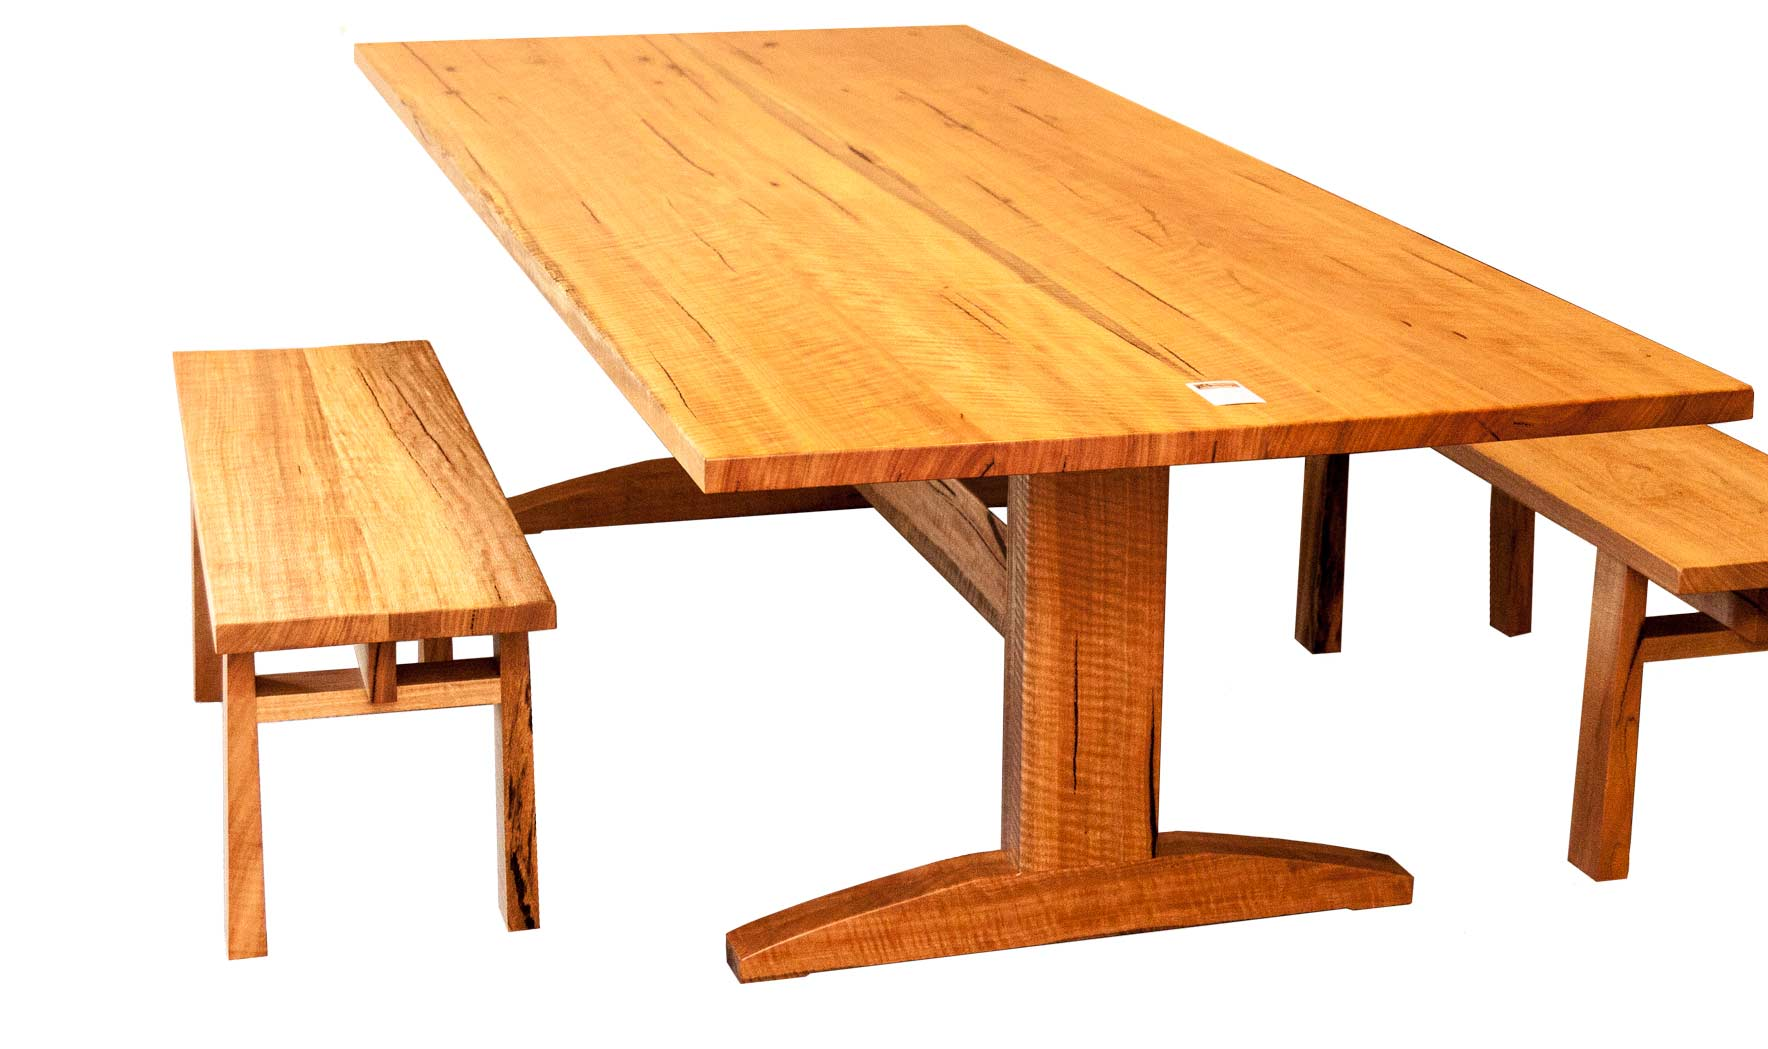 Trestle table dining room tables trestle table dining for Dining room tables perth